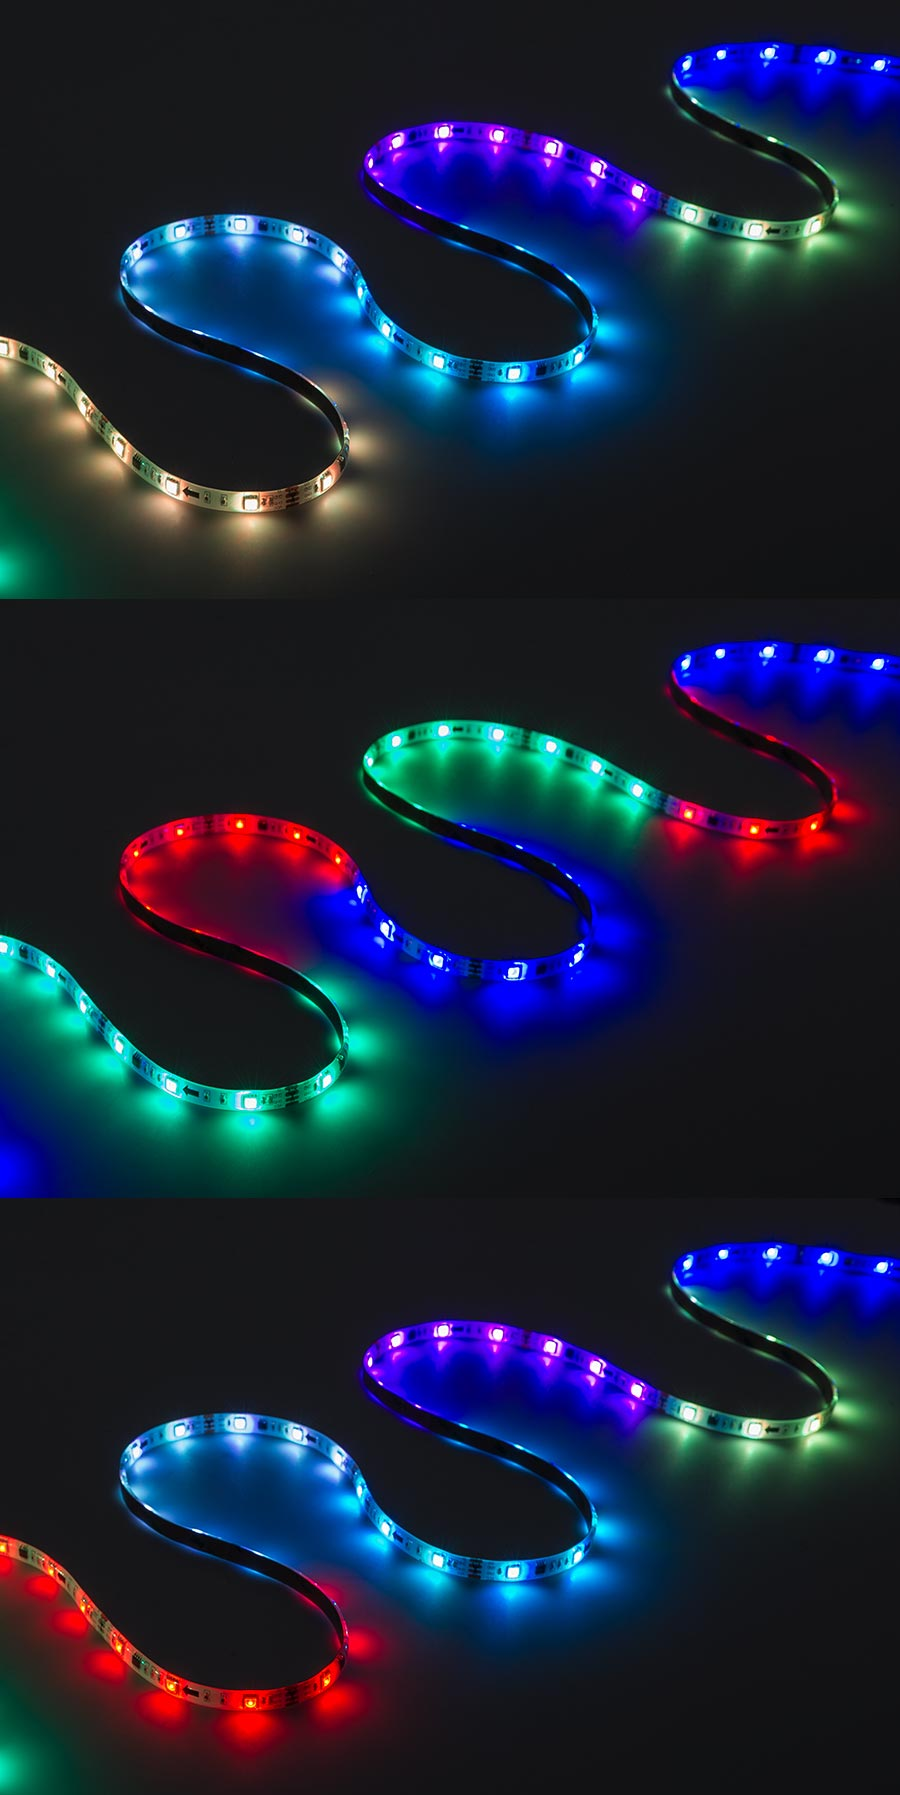 Outdoor rgb led strip lights color chasing 12v led tape light outdoor rgb led strip lights color chasing 12v led tape light waterproof 37 lumensft aloadofball Gallery